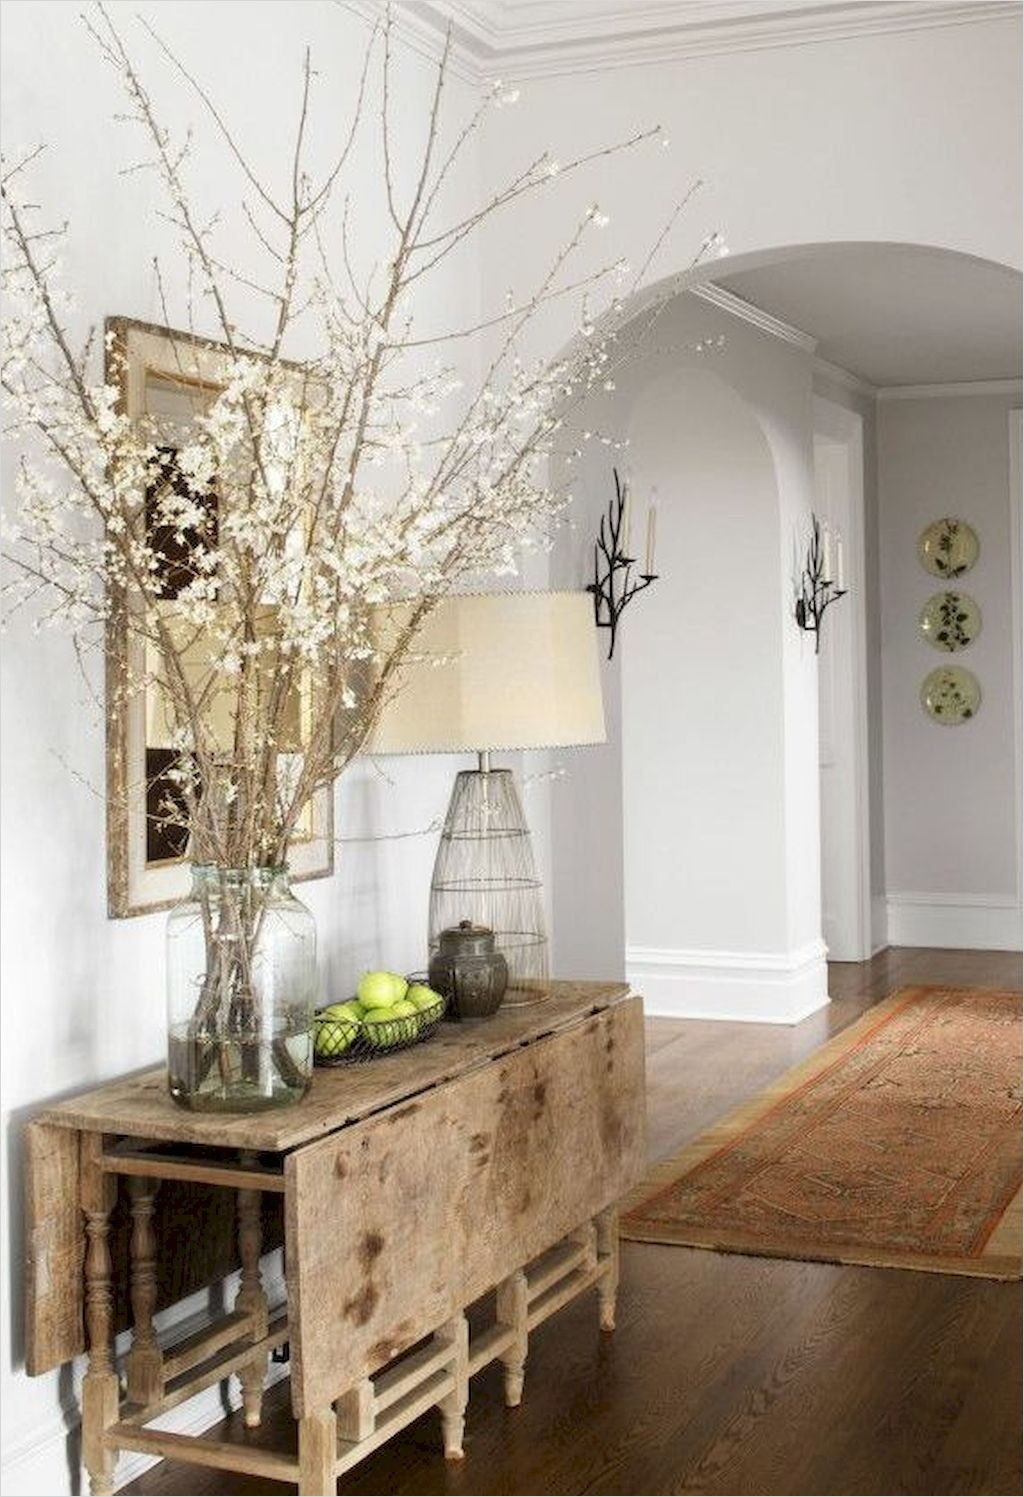 43 Farmhouse Entry Decor 34 65 Rustic Farmhouse Entryway Decorating Ideas Homearchite 4